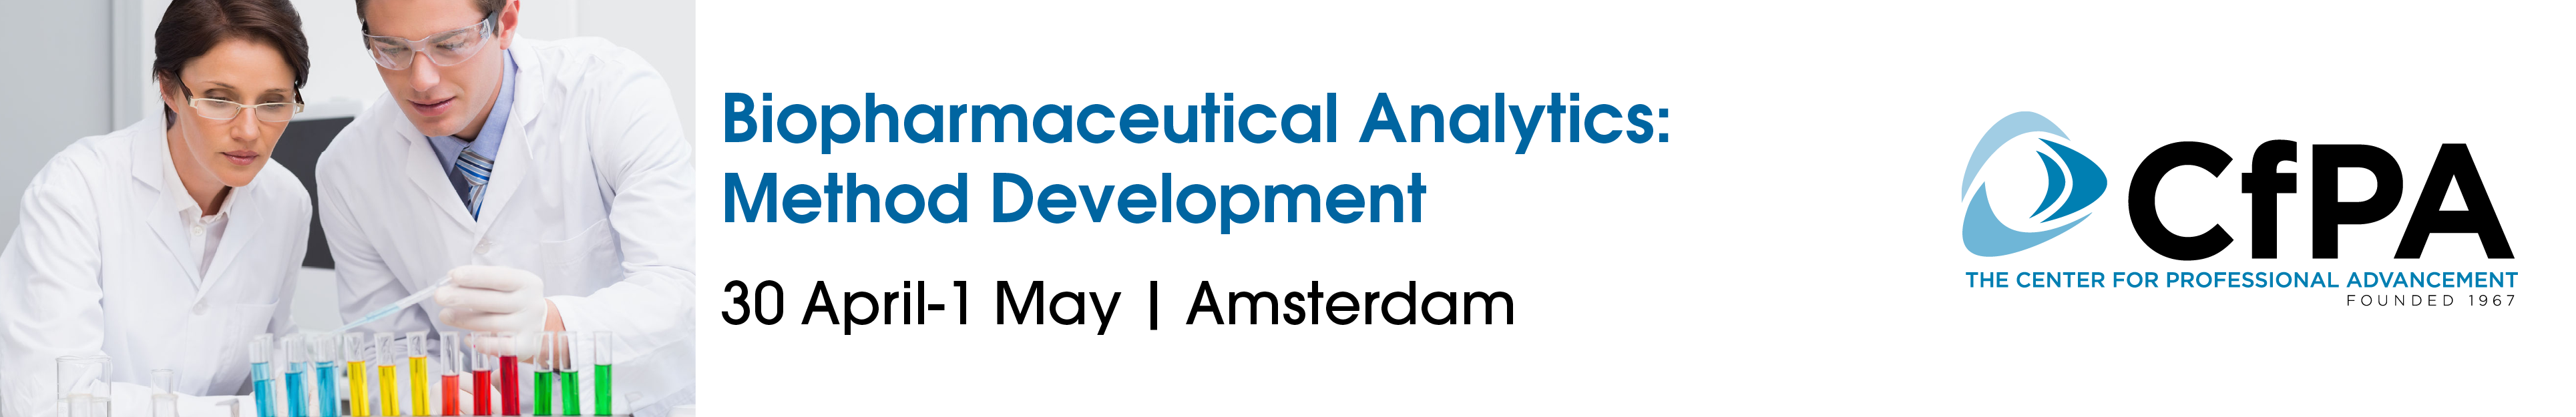 Biopharmaceutical Analytics: Method Development